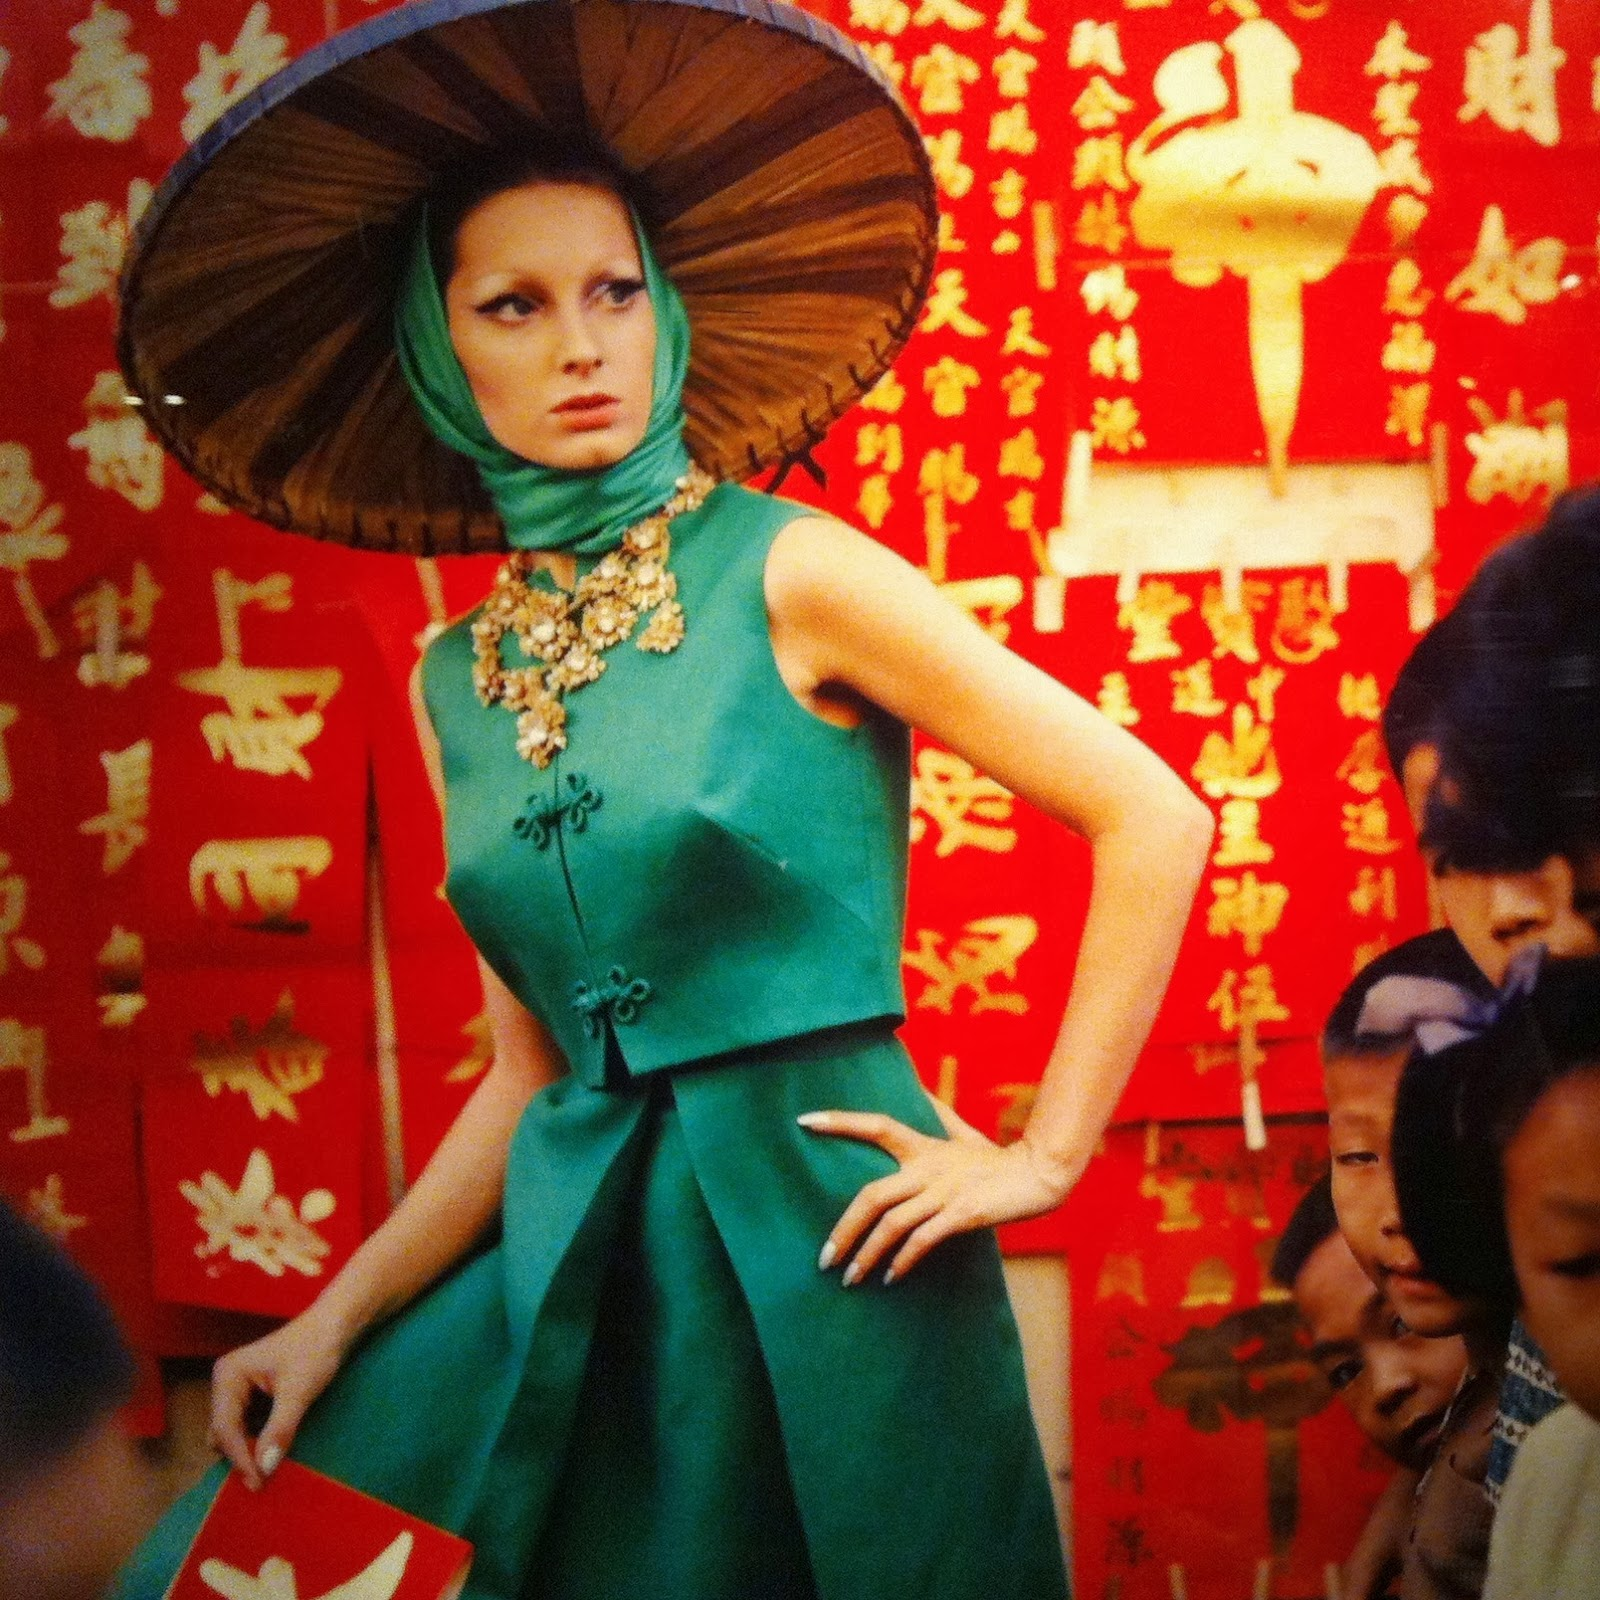 Duddell's Foreign Presence with 1960's fashion shoot in Hong Kong